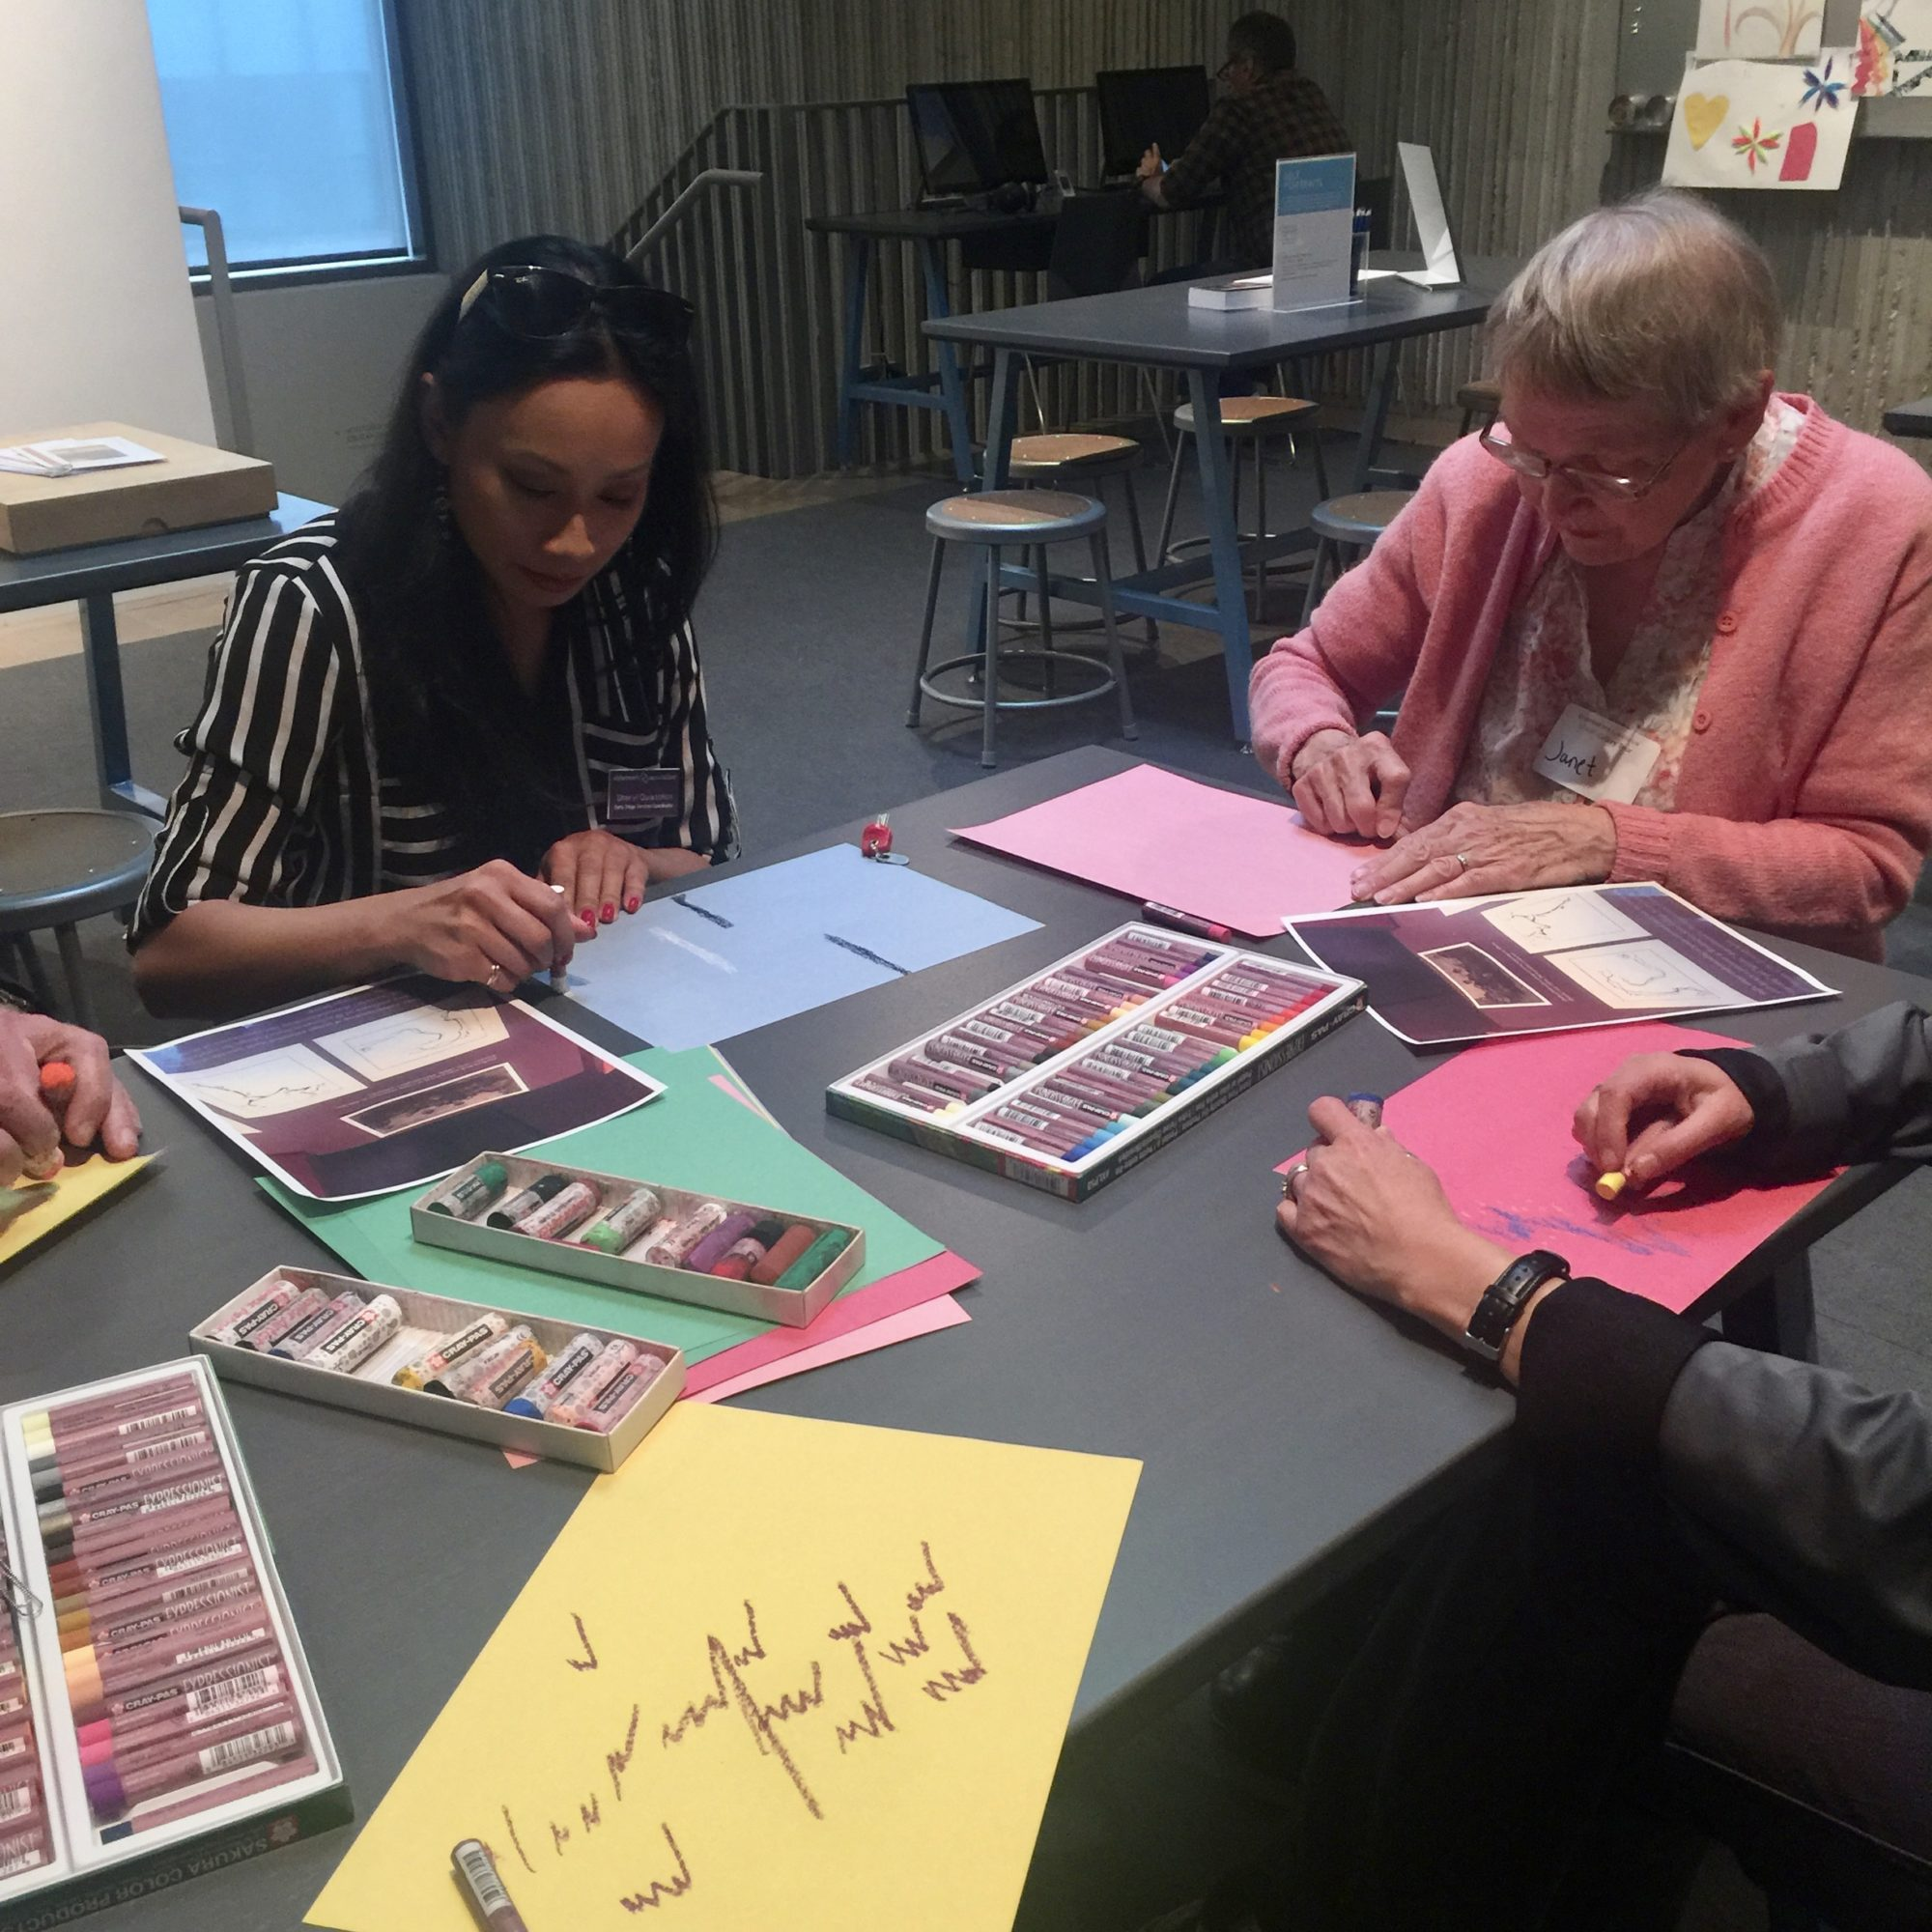 A group of women sit at a table a color on different pages of construction paper with pastels